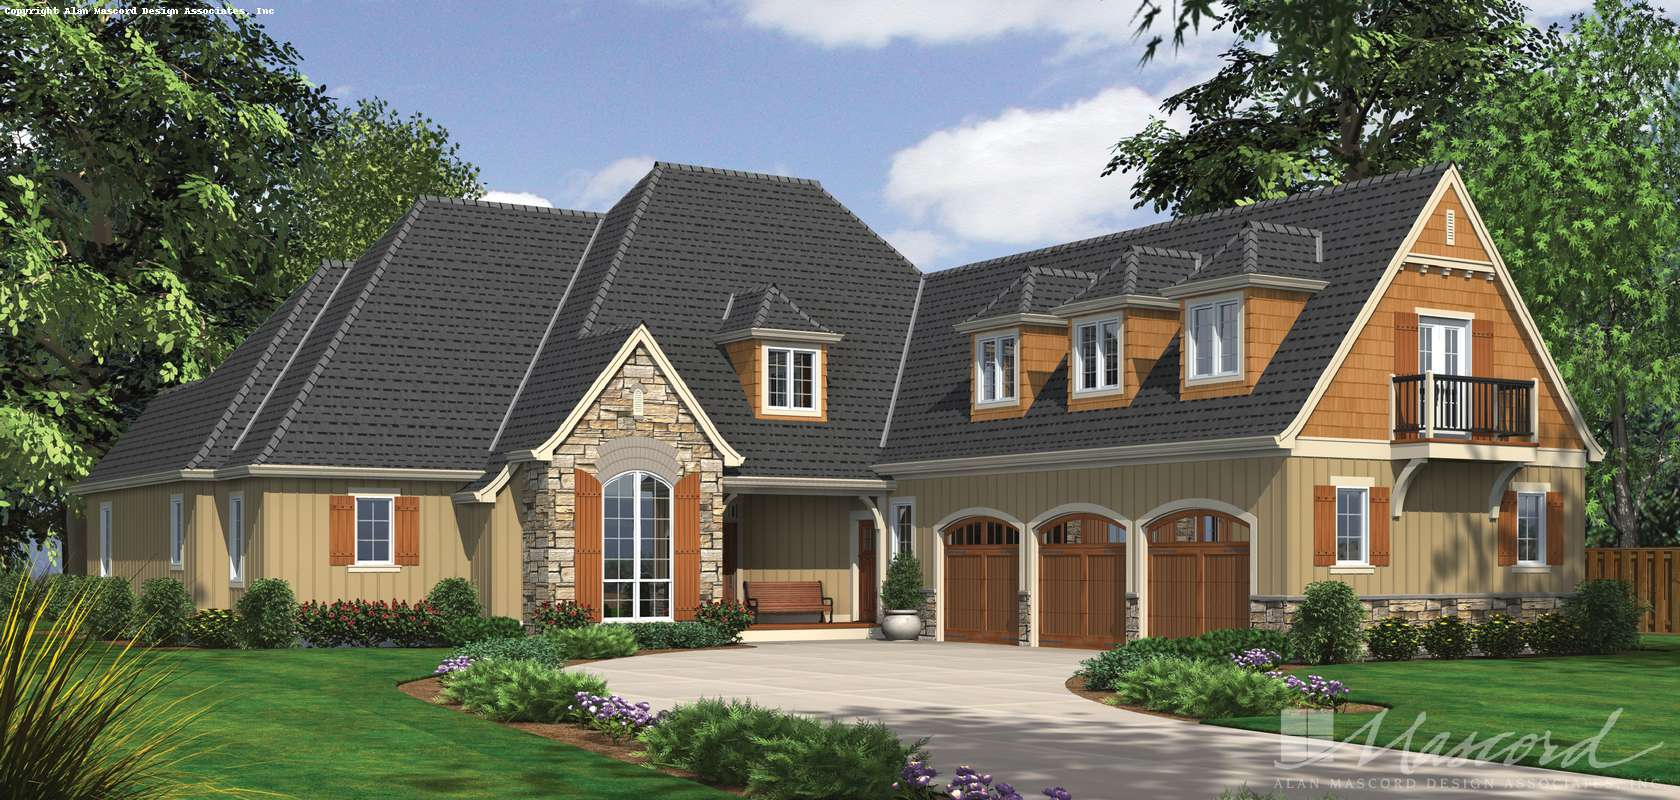 Mascord House Plan 2390: The Hamilton